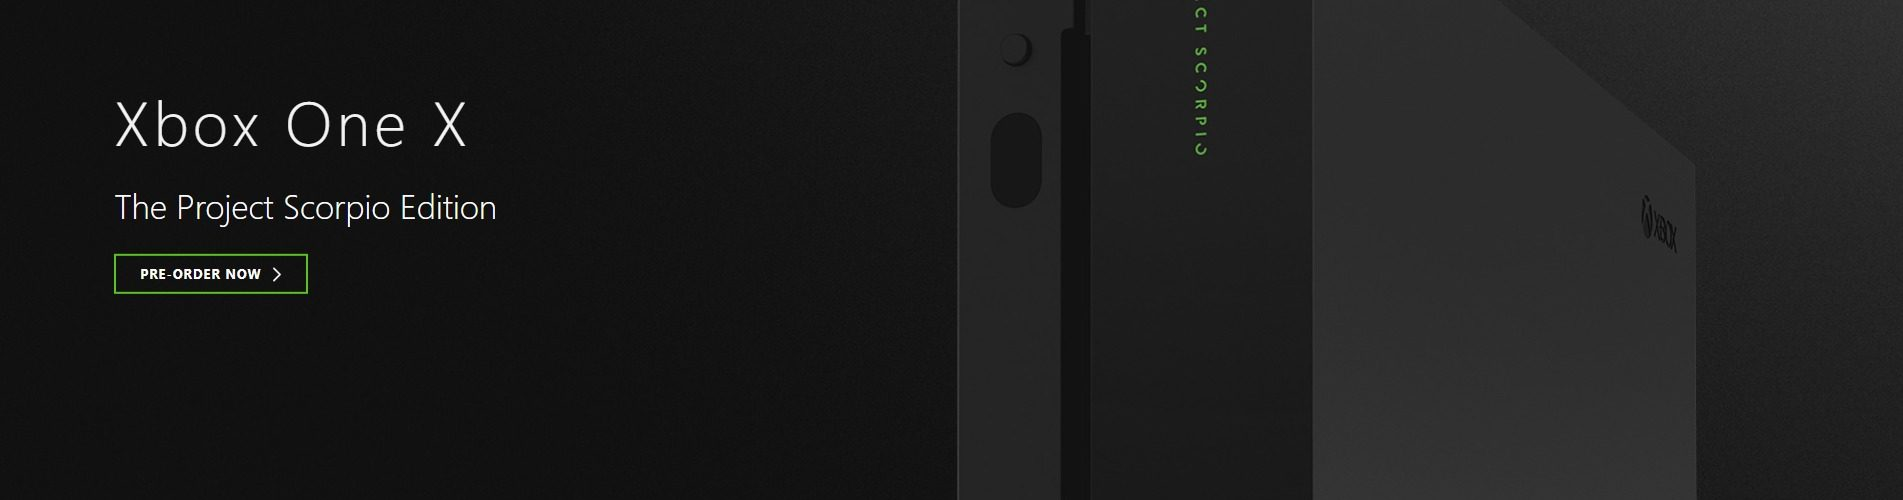 XBox One X Project Scorpio Image 6